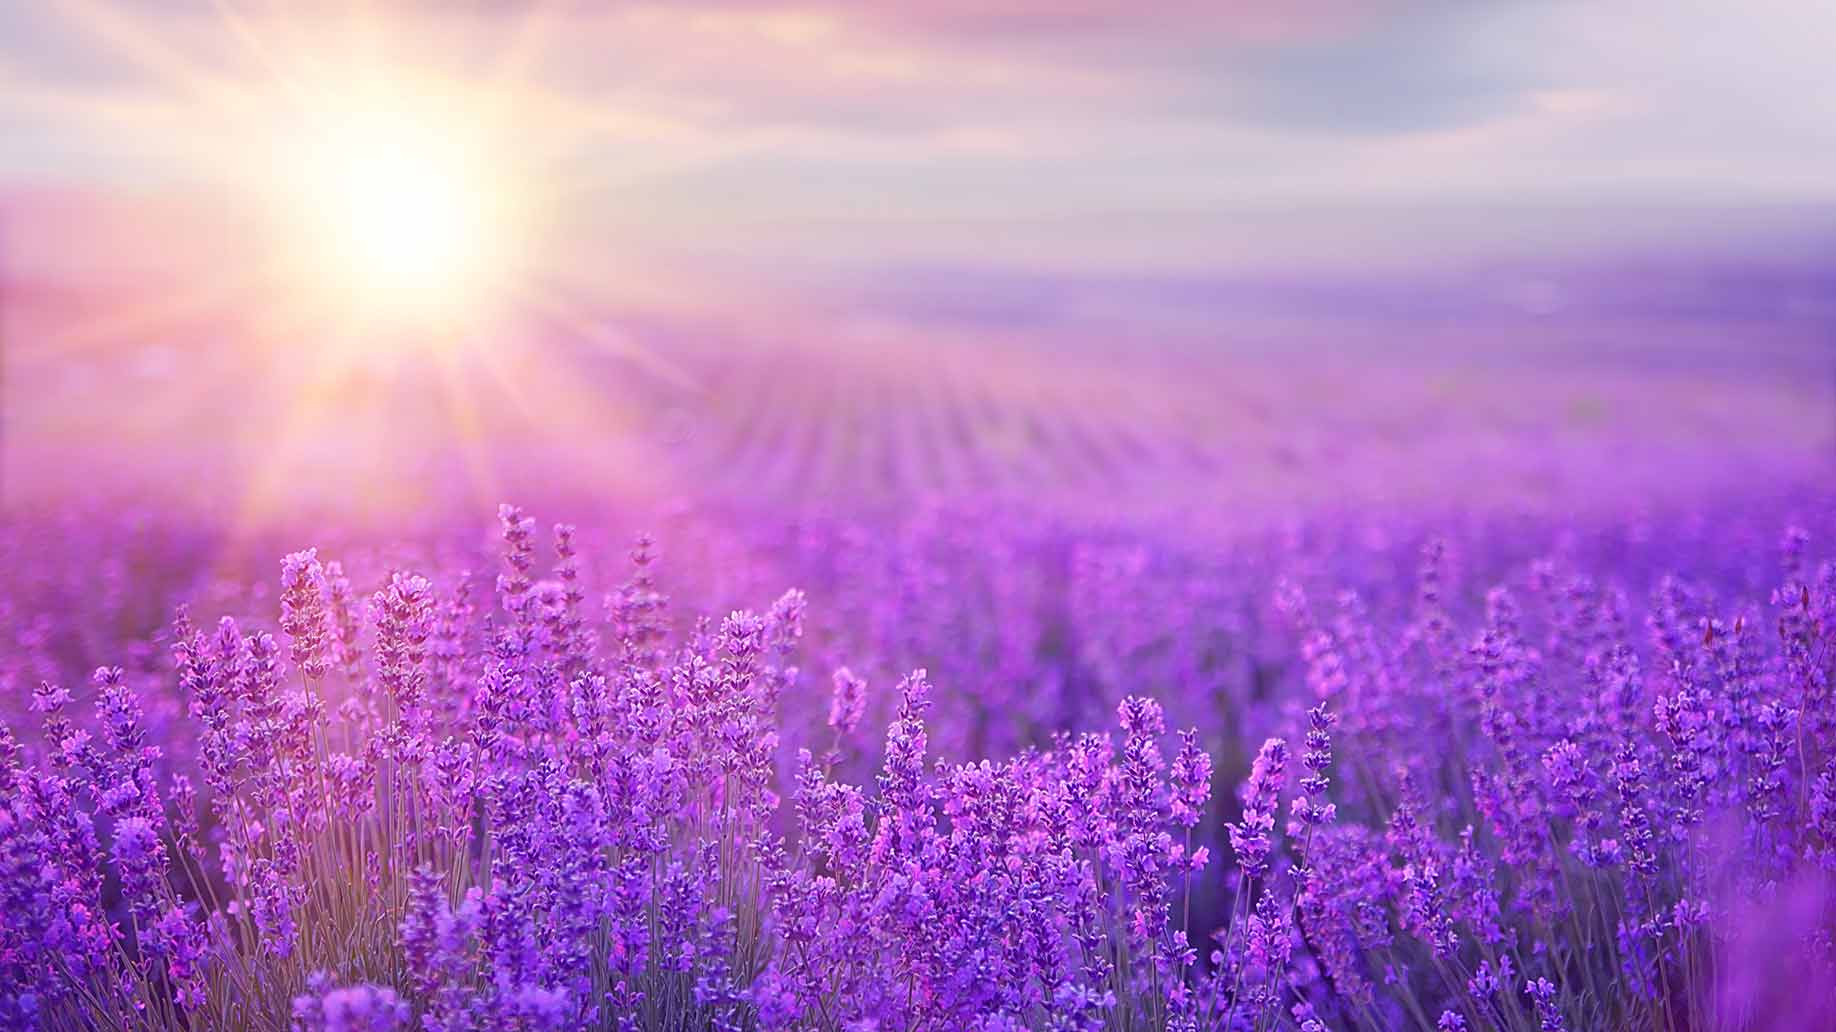 lavender purple flowers field sunshine insomnia sleep disorder natural remedy aid